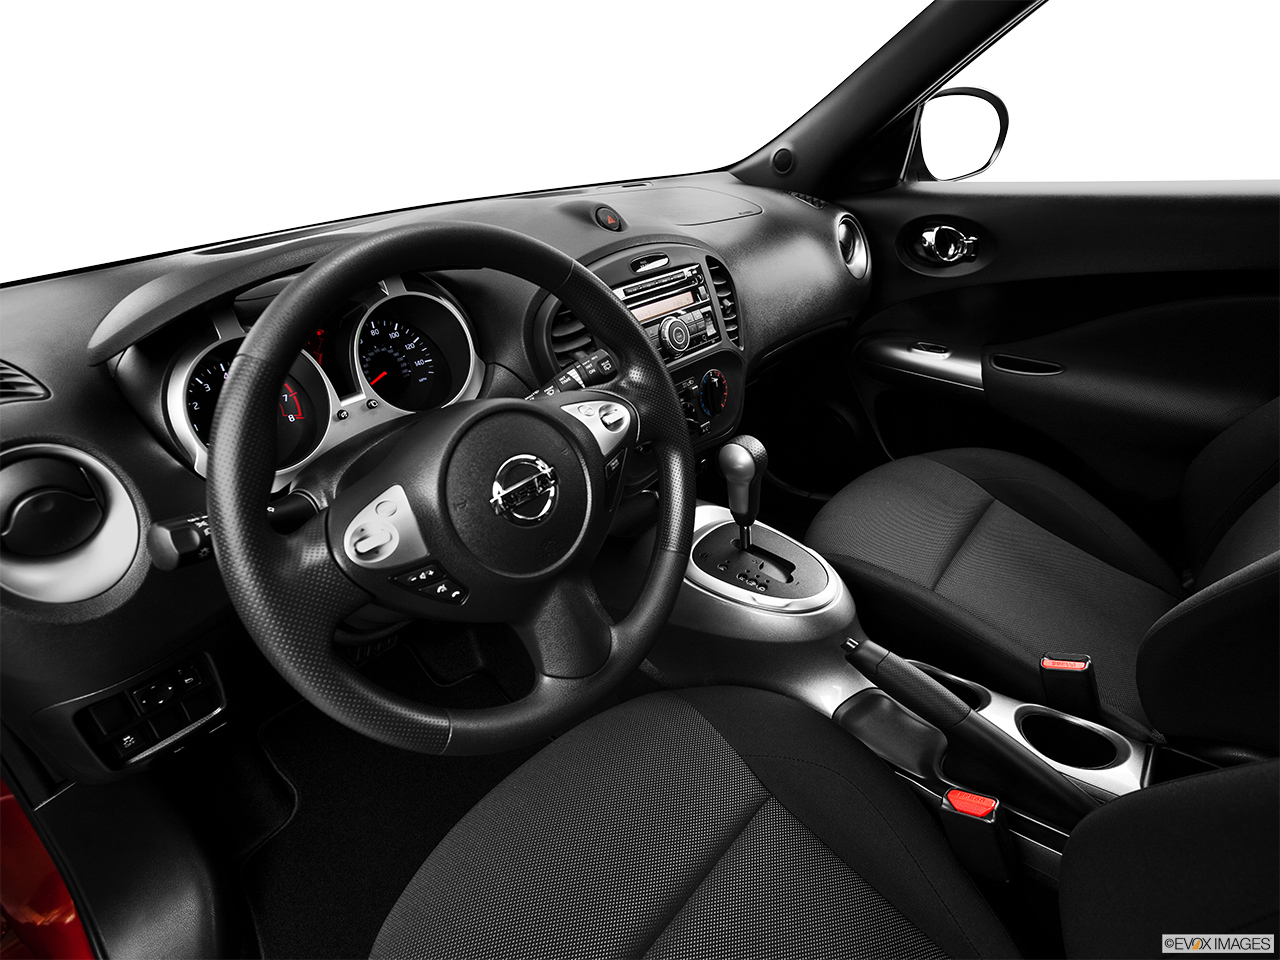 2015 Nissan JUKE 5 Door CVT S AWD Wagon   Interior Hero (driveru0027s Side)